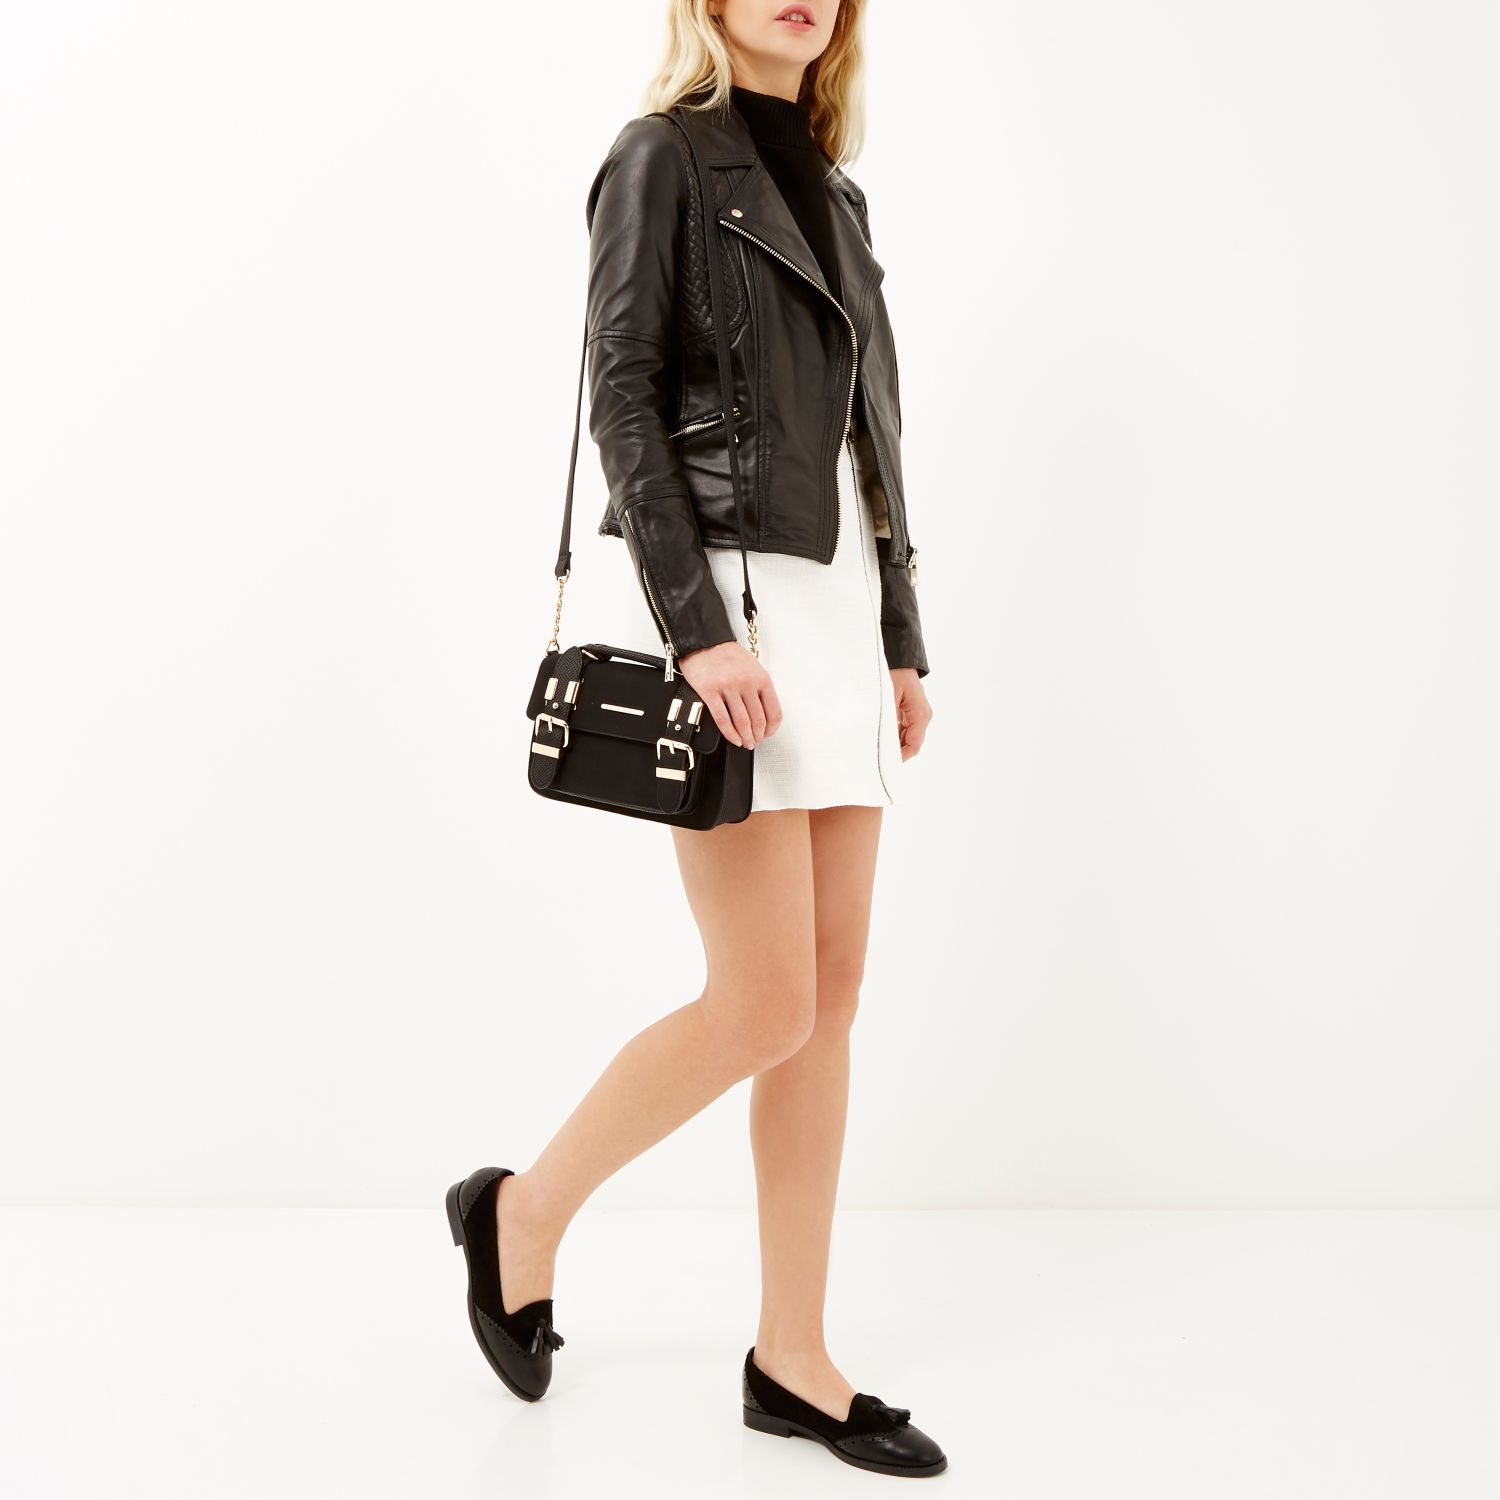 River island Black Faux Suede Mini Satchel Handbag in Black | Lyst